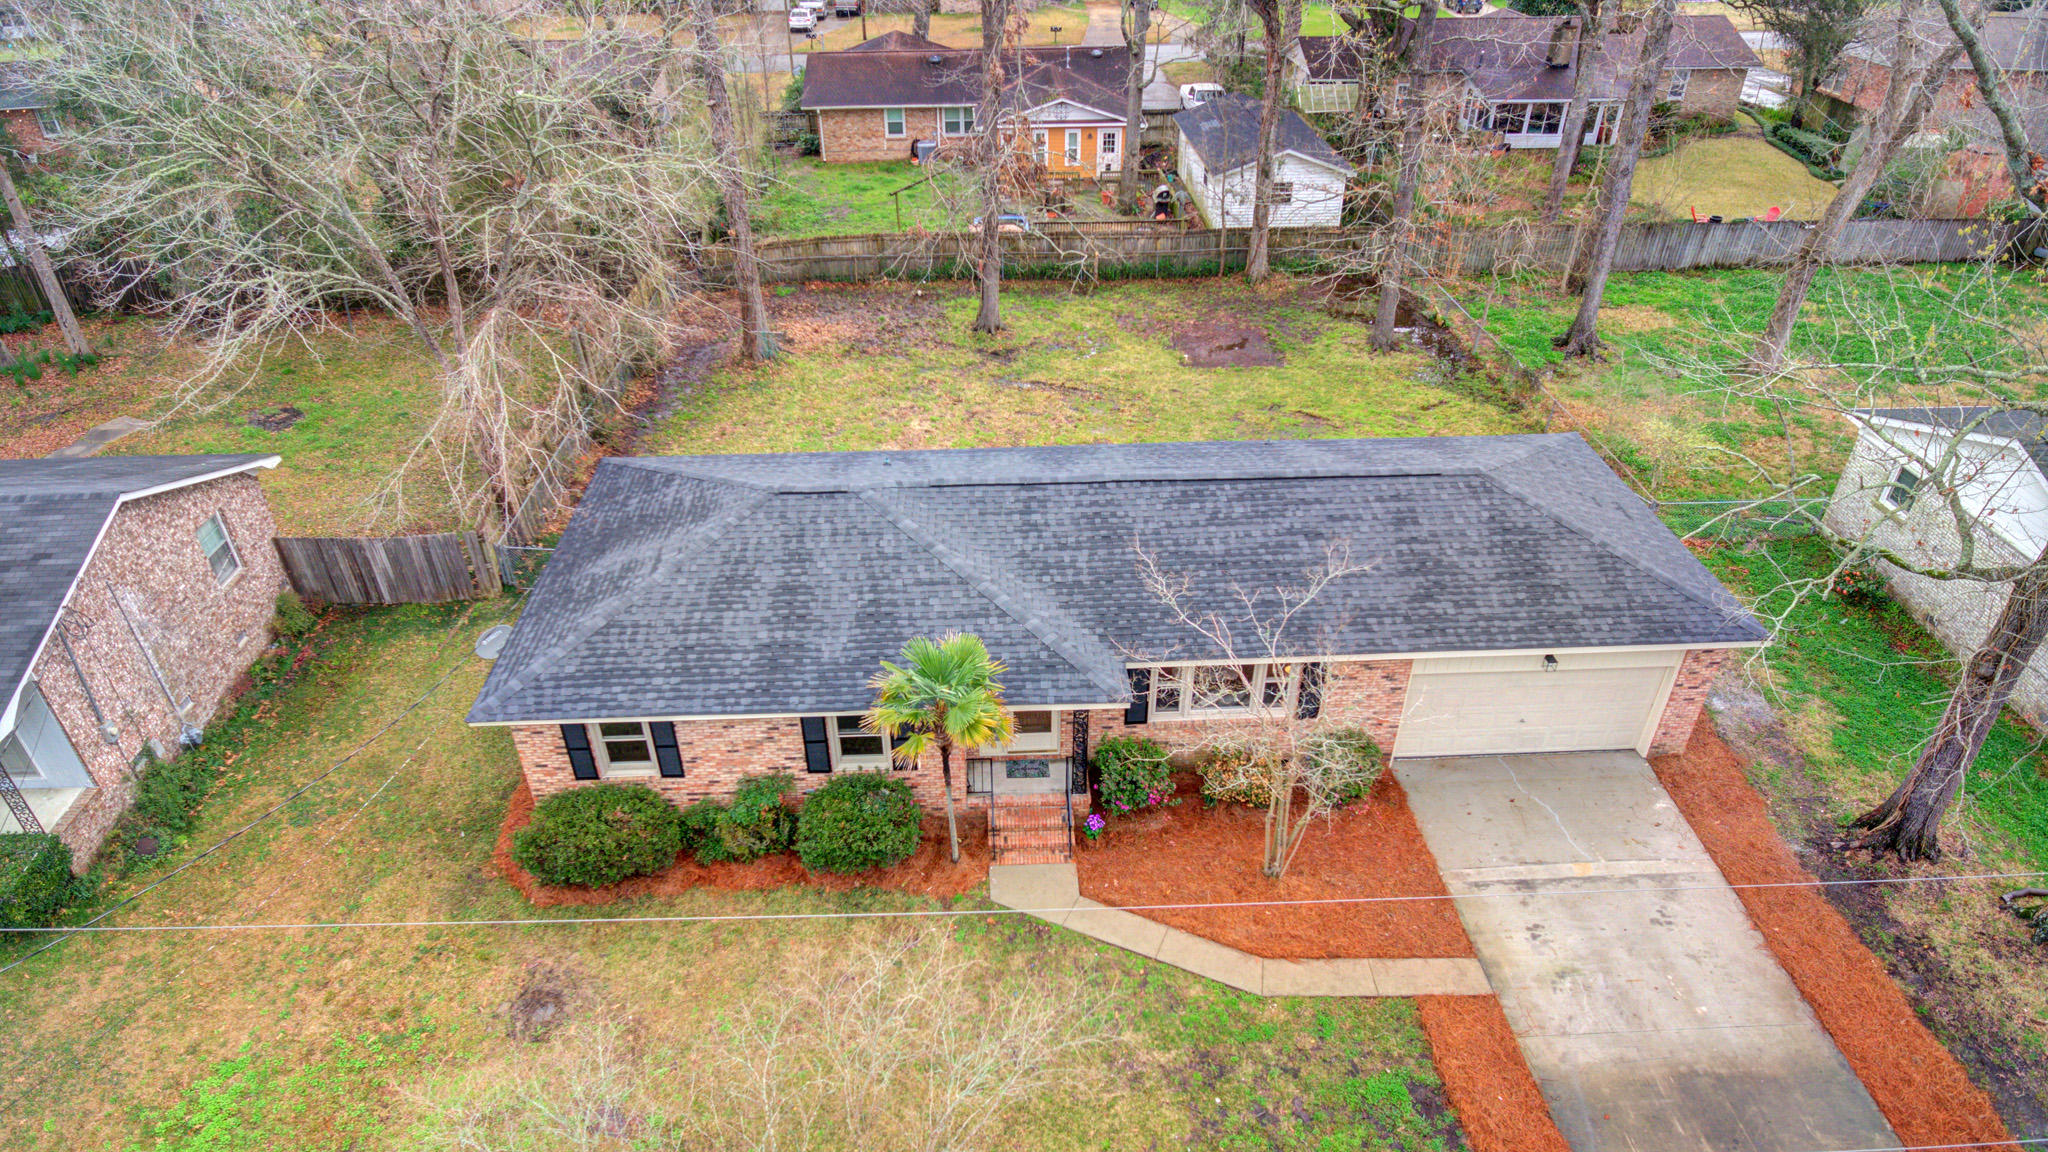 North Tranquil Acres Homes For Sale - 109 Monroe, Ladson, SC - 0